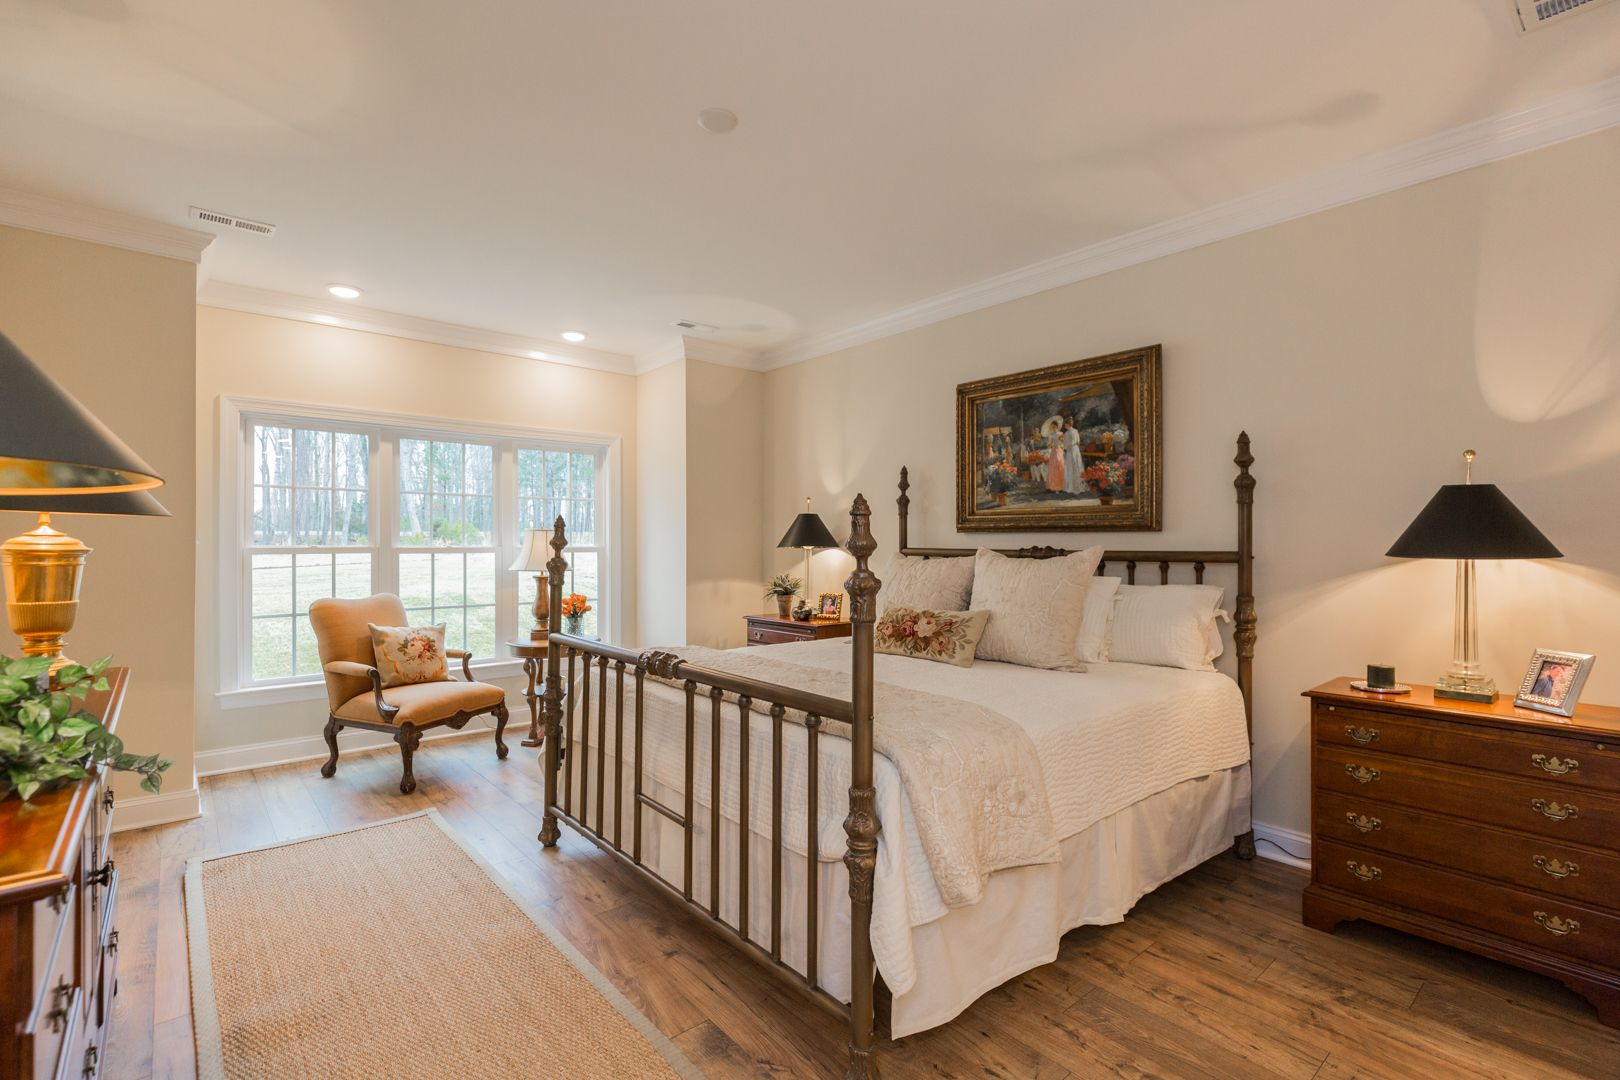 Bedroom featured in the Ashmont - Chickahominy Falls By Boone Homes, Inc.